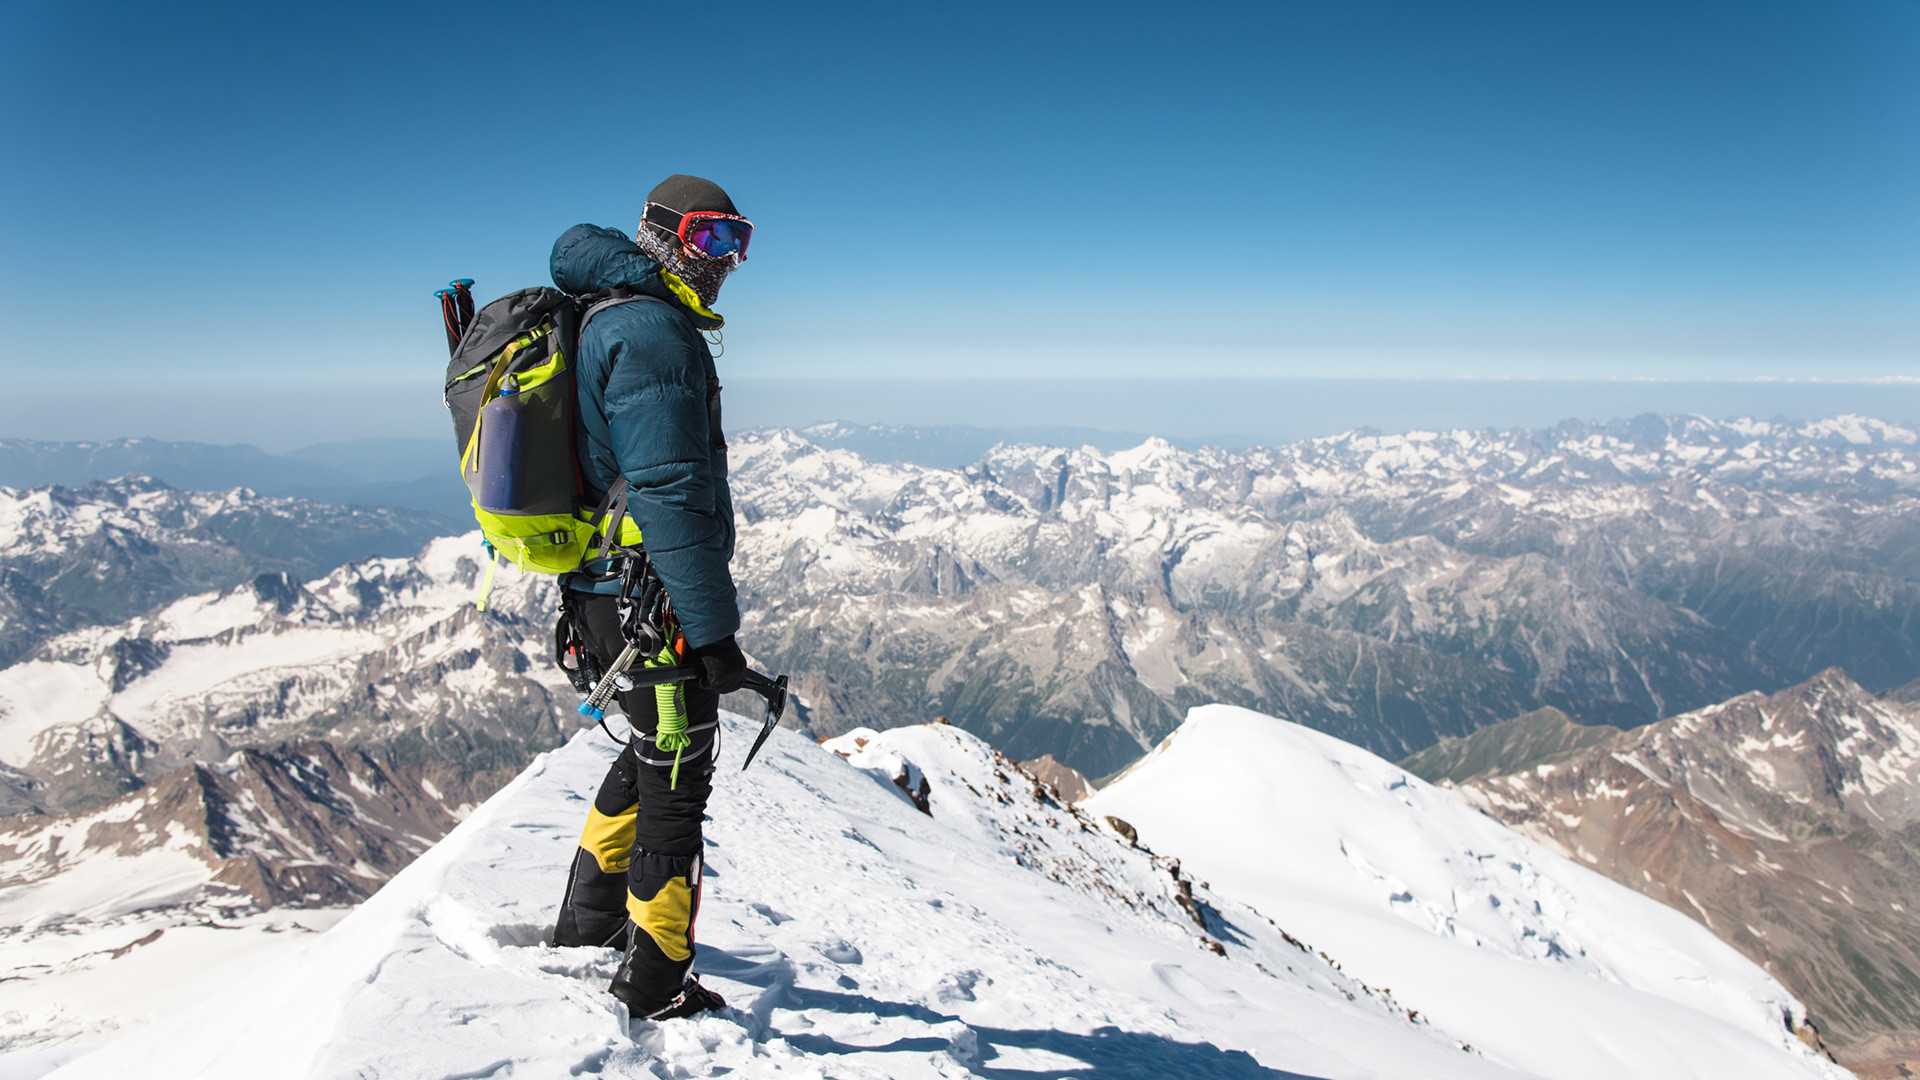 Professional guide-climber on the snow-covered summit of Elbrus sleeping volcano